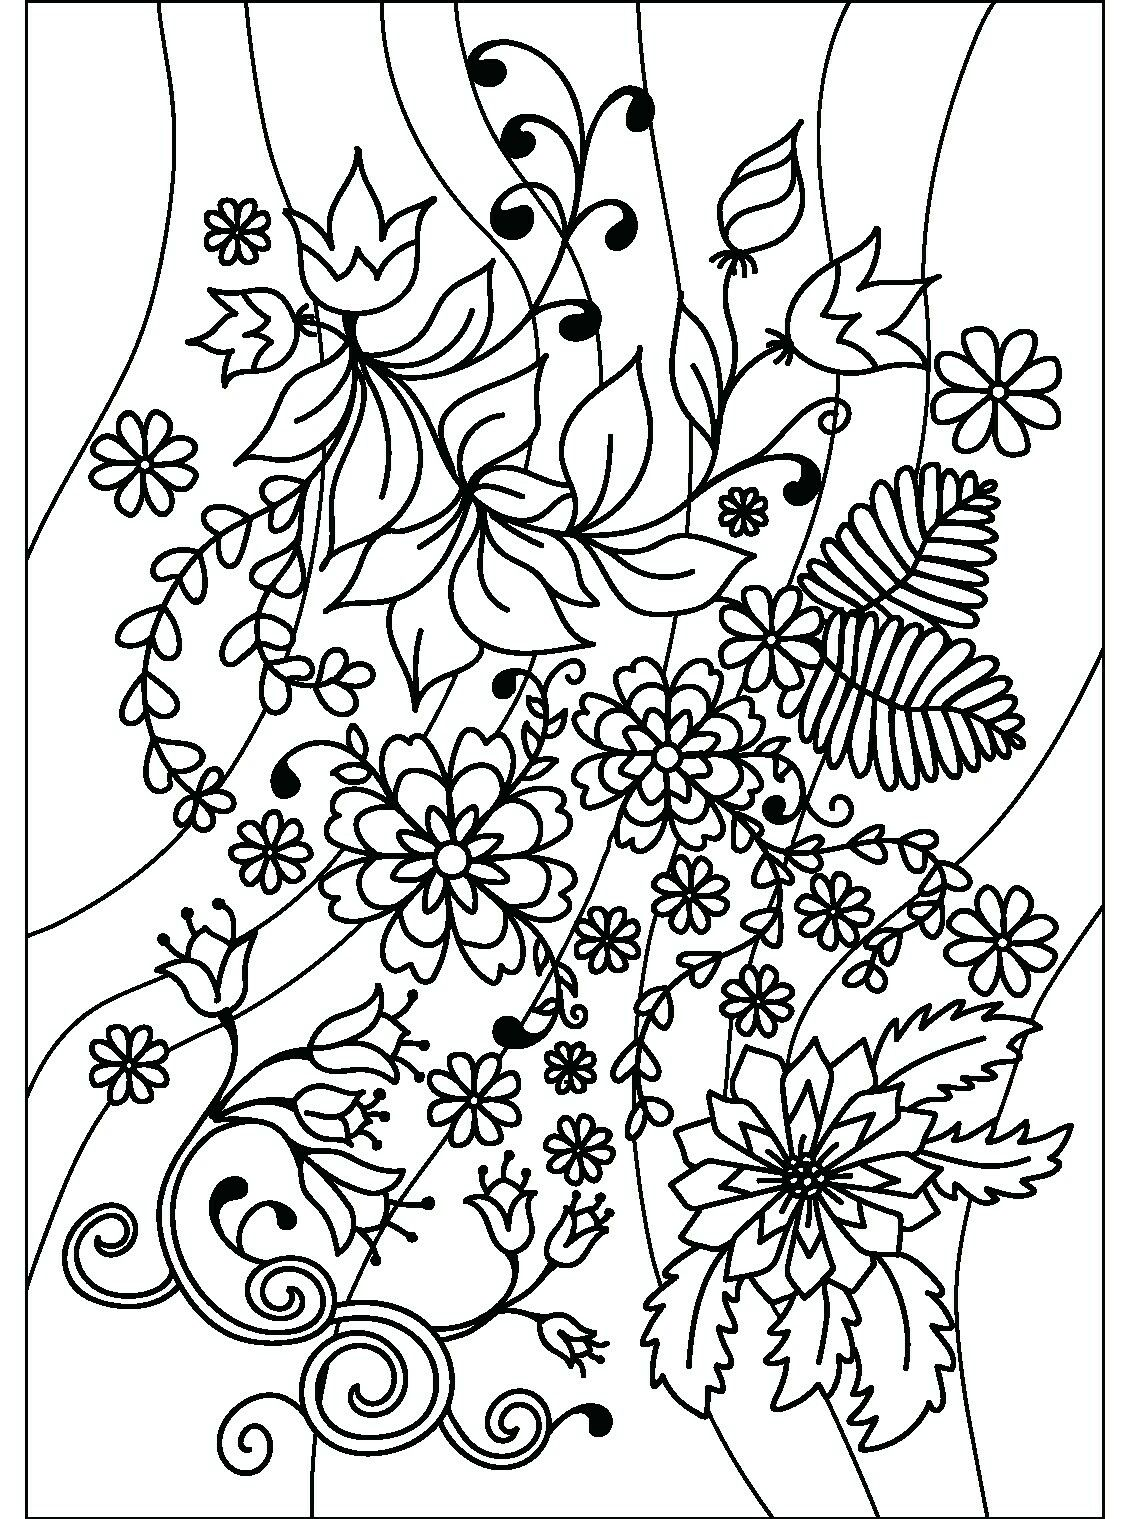 Colouring Pages And Floral On Pinterest